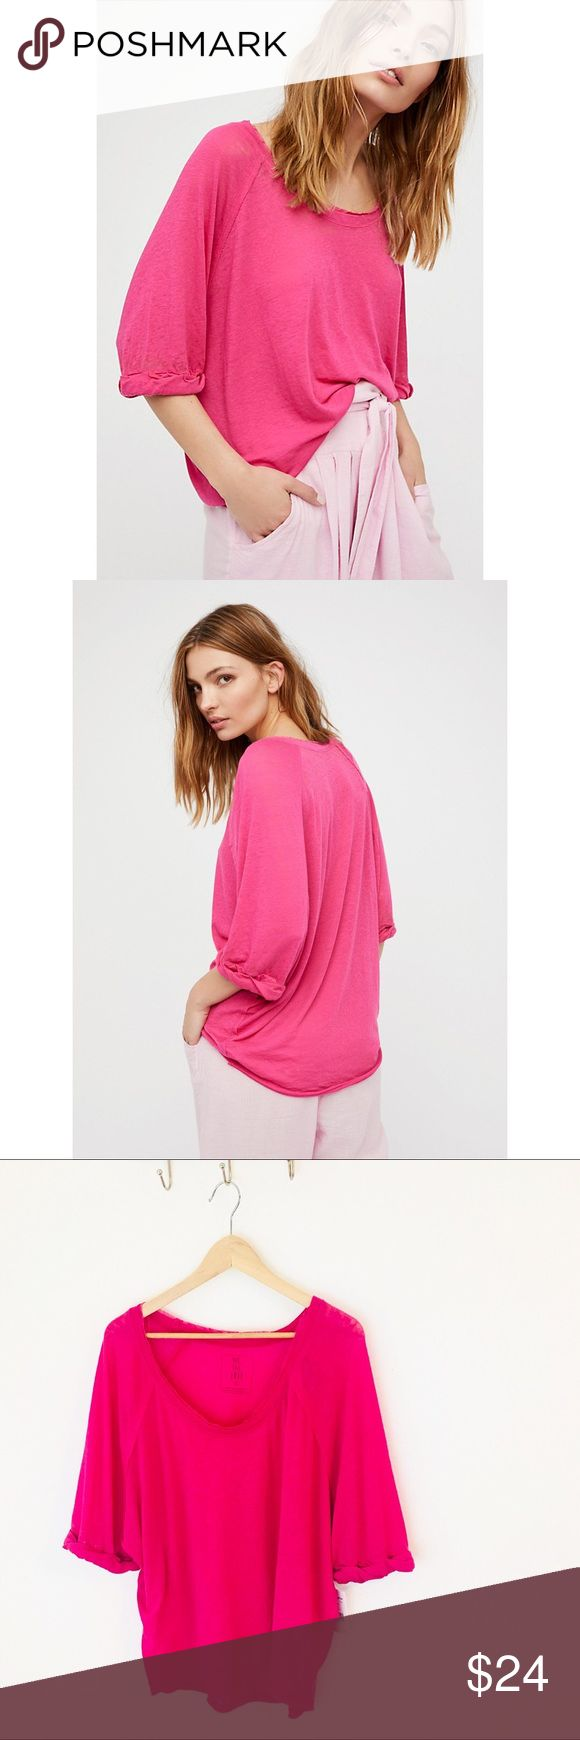 Free People Moonlight Tee Slouchy fit burnout knit tee in Hot Pink. Loose fit, NWT! 🌻 We The Free Free People Tops Tees - Short Sleeve